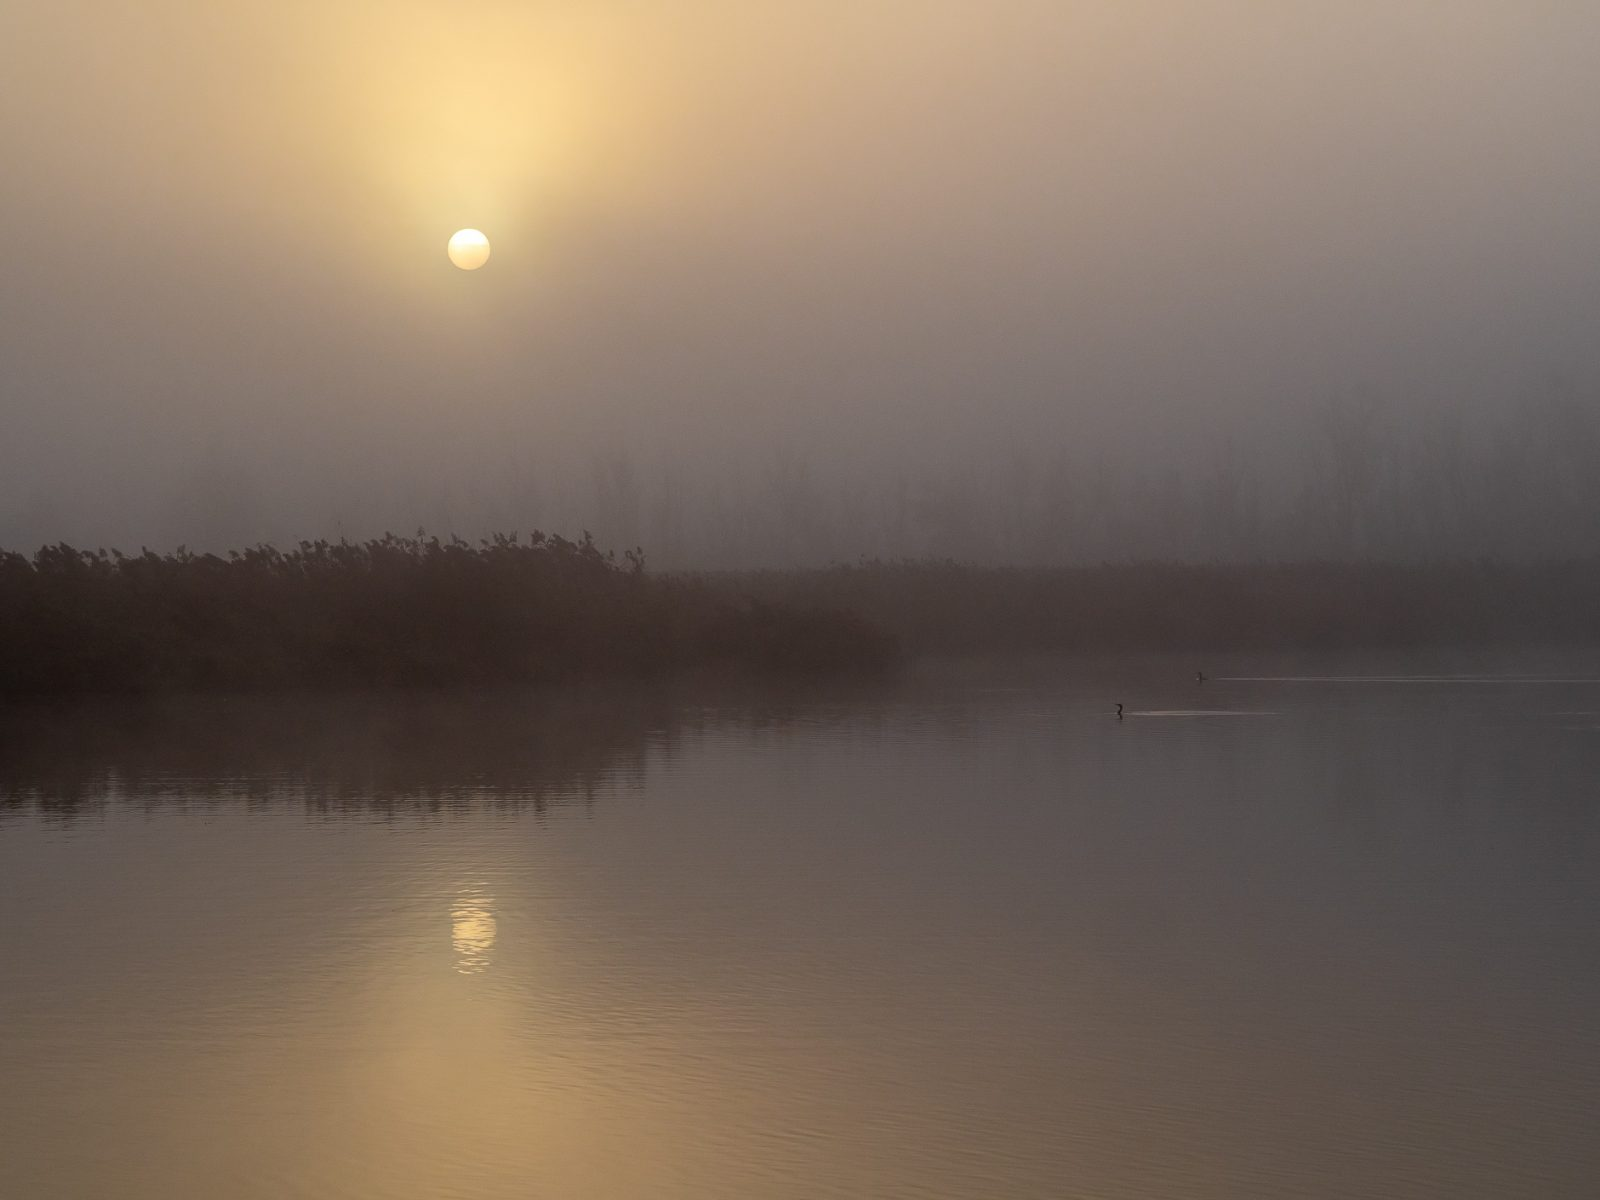 Sunrise and heavy fog at Rostock an der Warnow